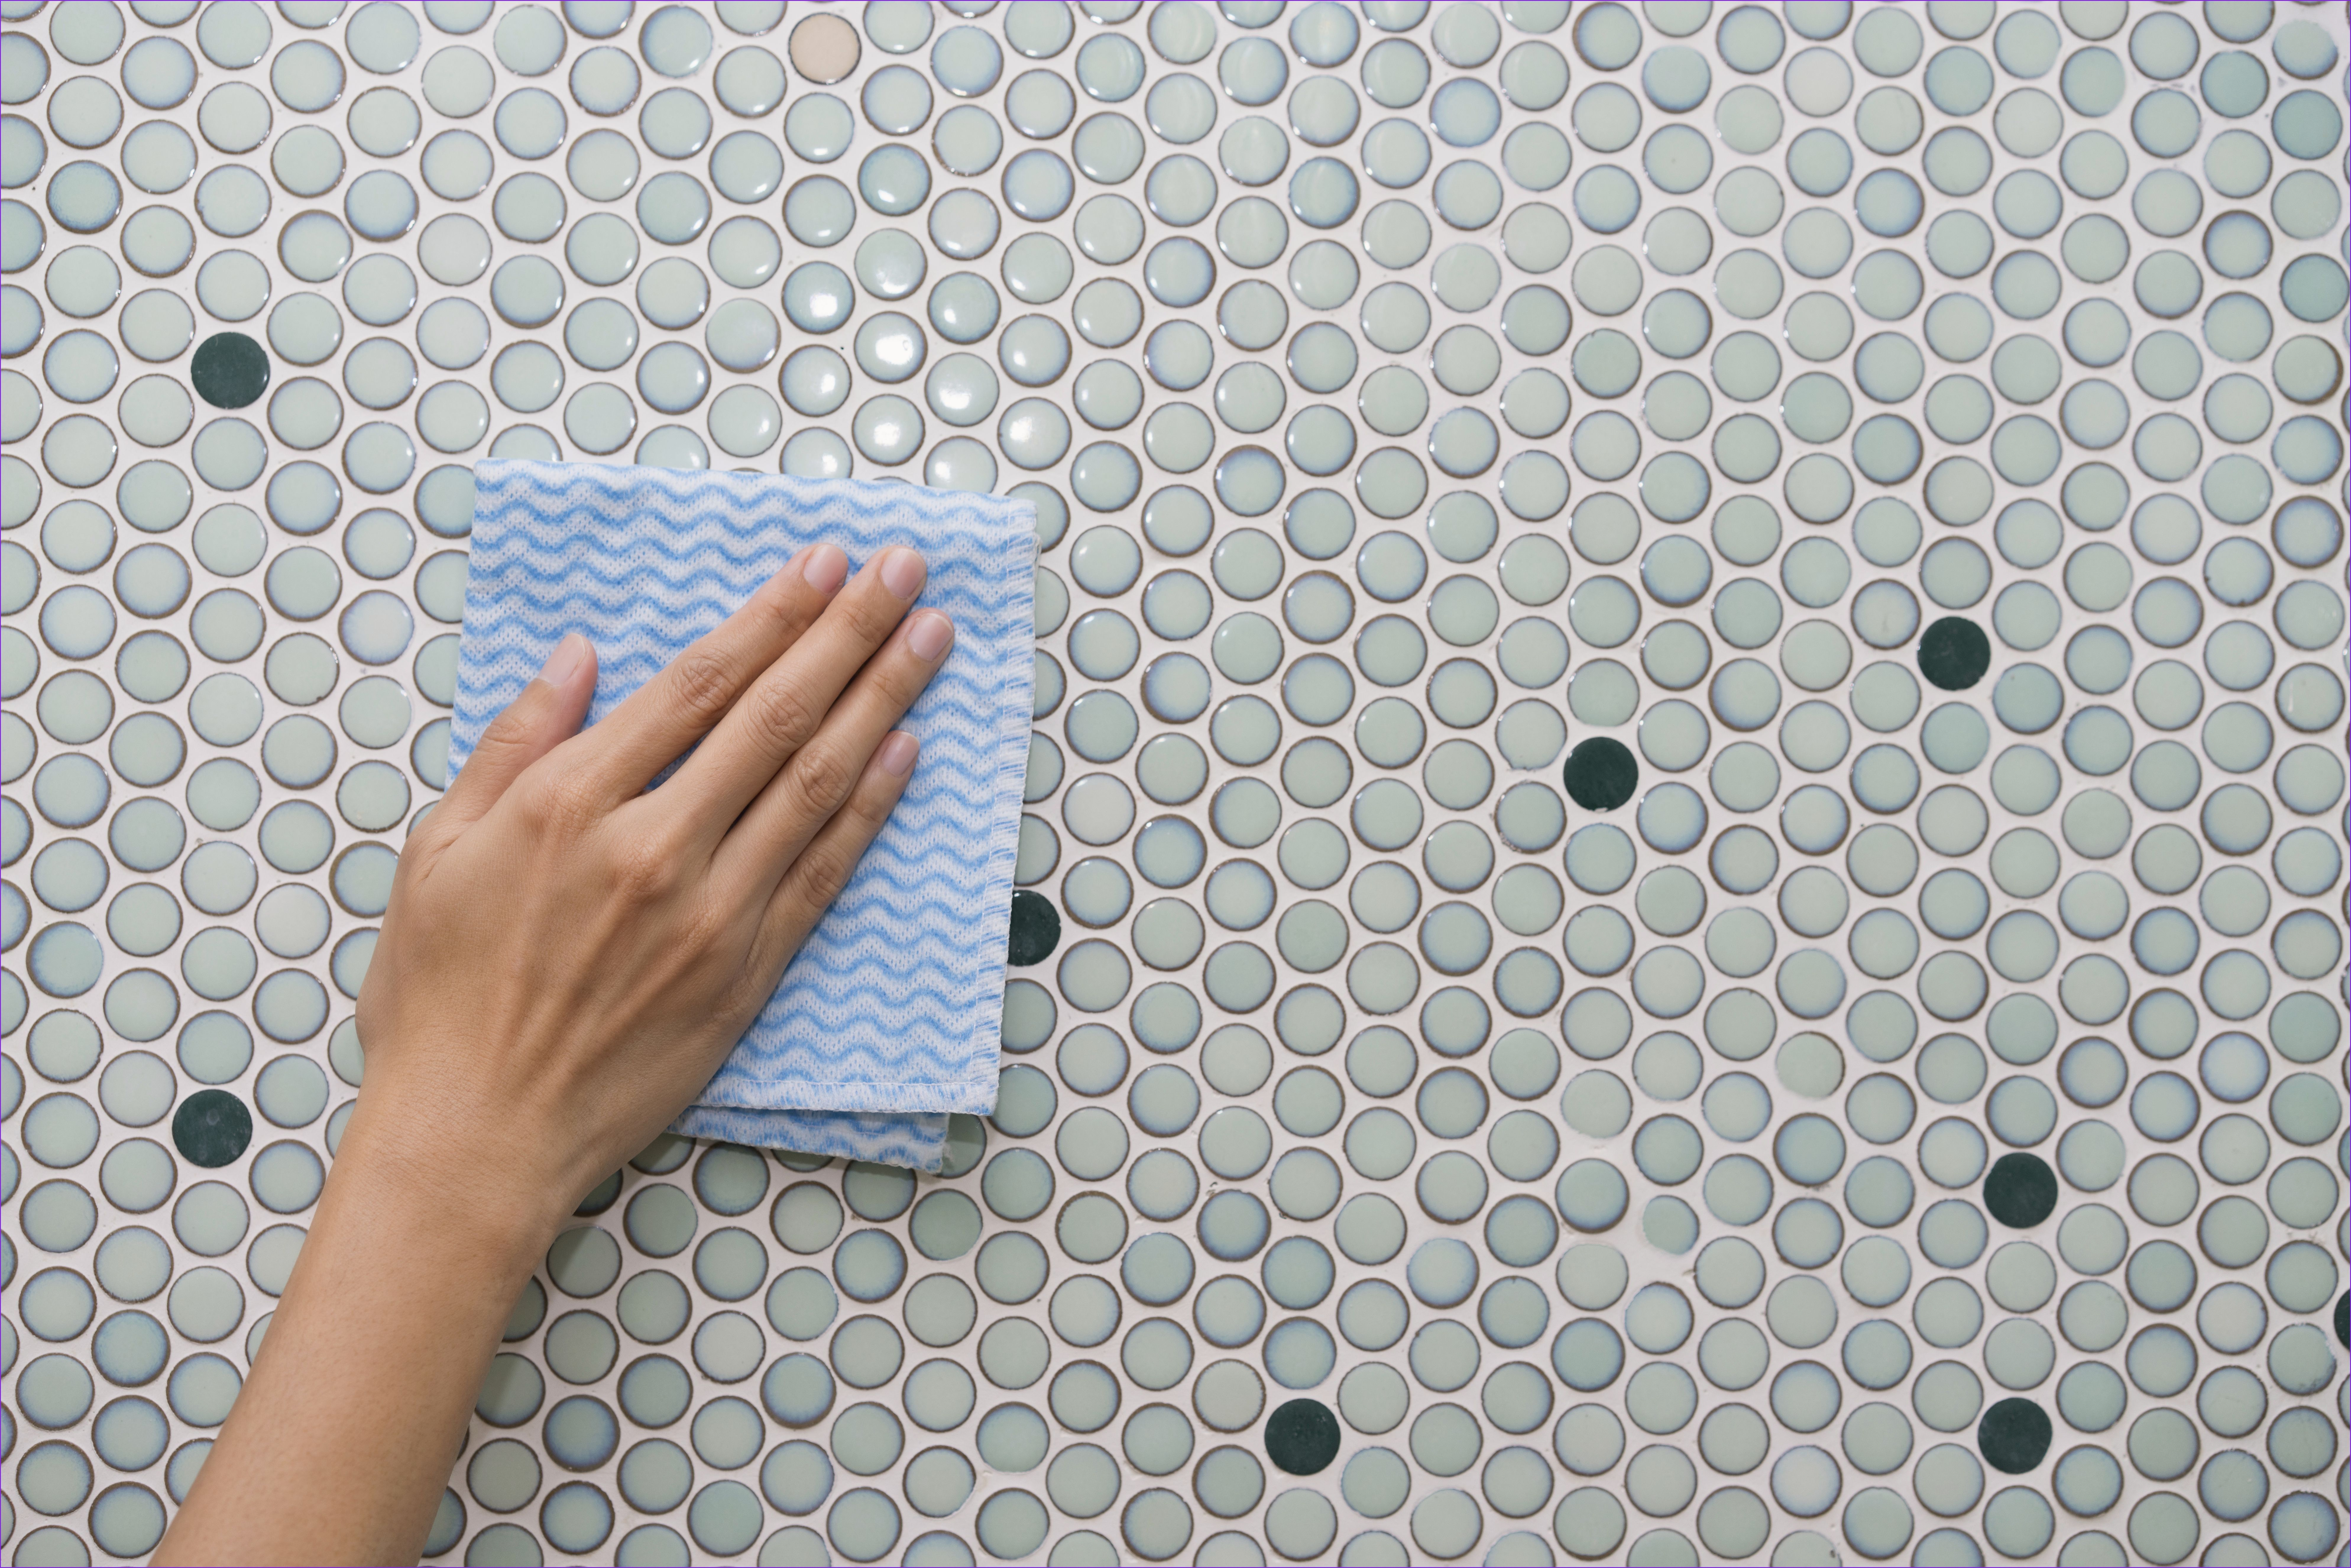 Awesome How To Replace Bathroom Tiles That Have Fallen Off Tile Bathroom Mosaic Shower Tile Clean Tile